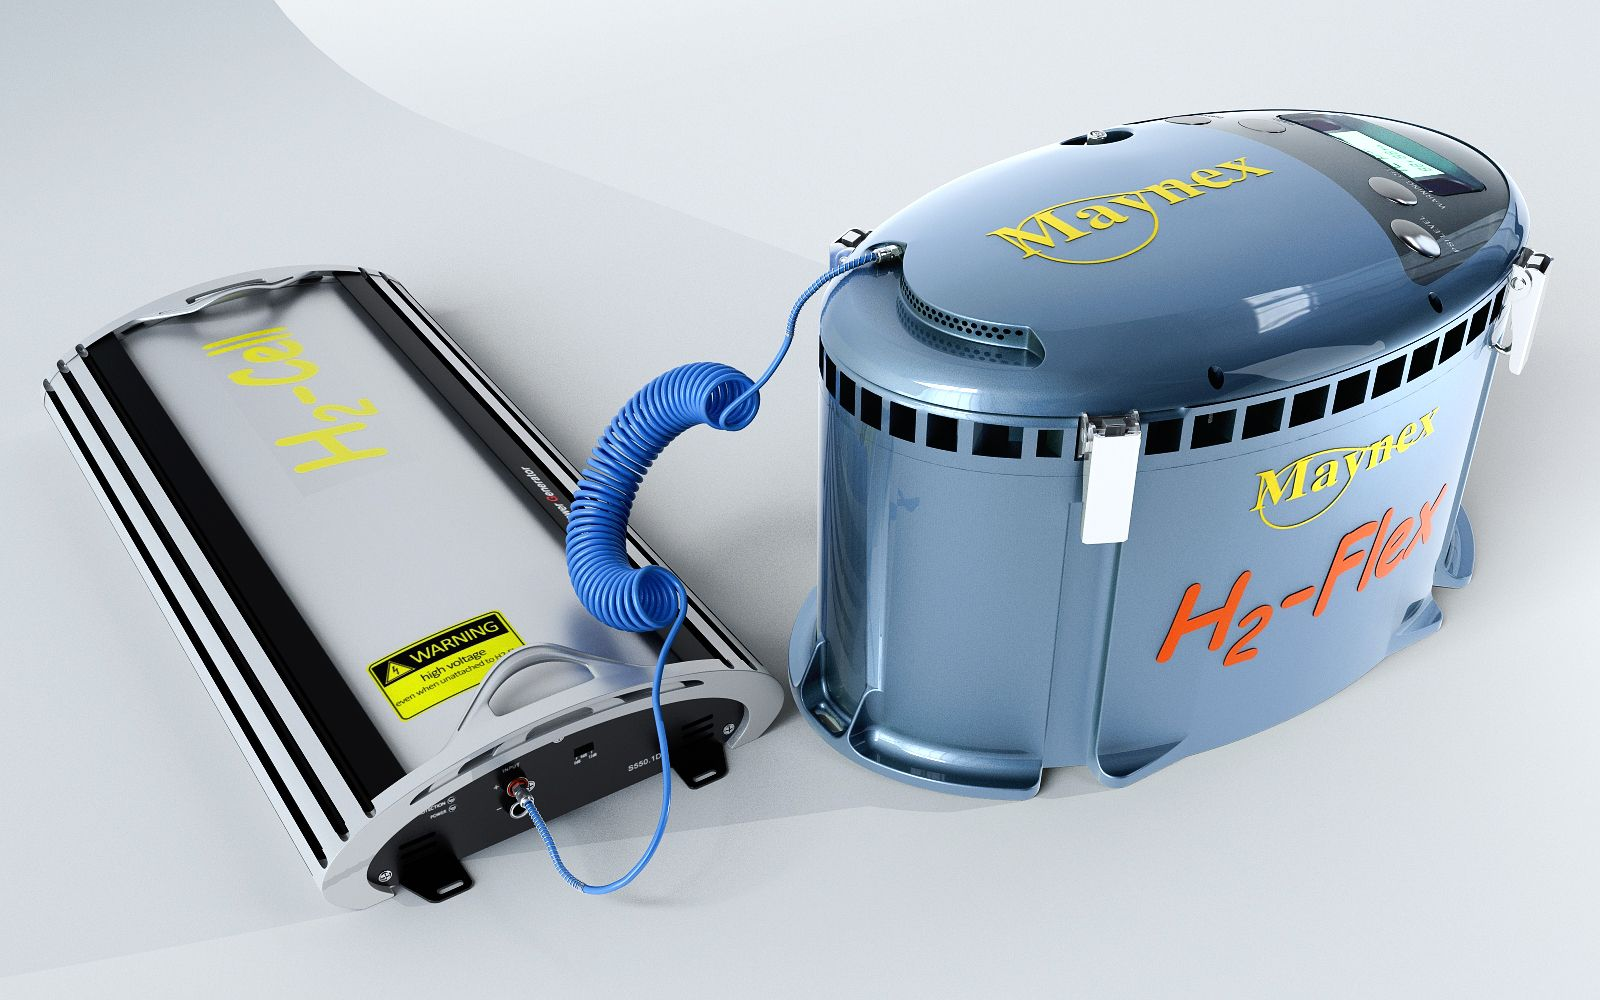 H2 Flex Water To Gas Hydrogen Hybrid Kit Is A Self Contained Generator The Converts Under Any Condition Into On